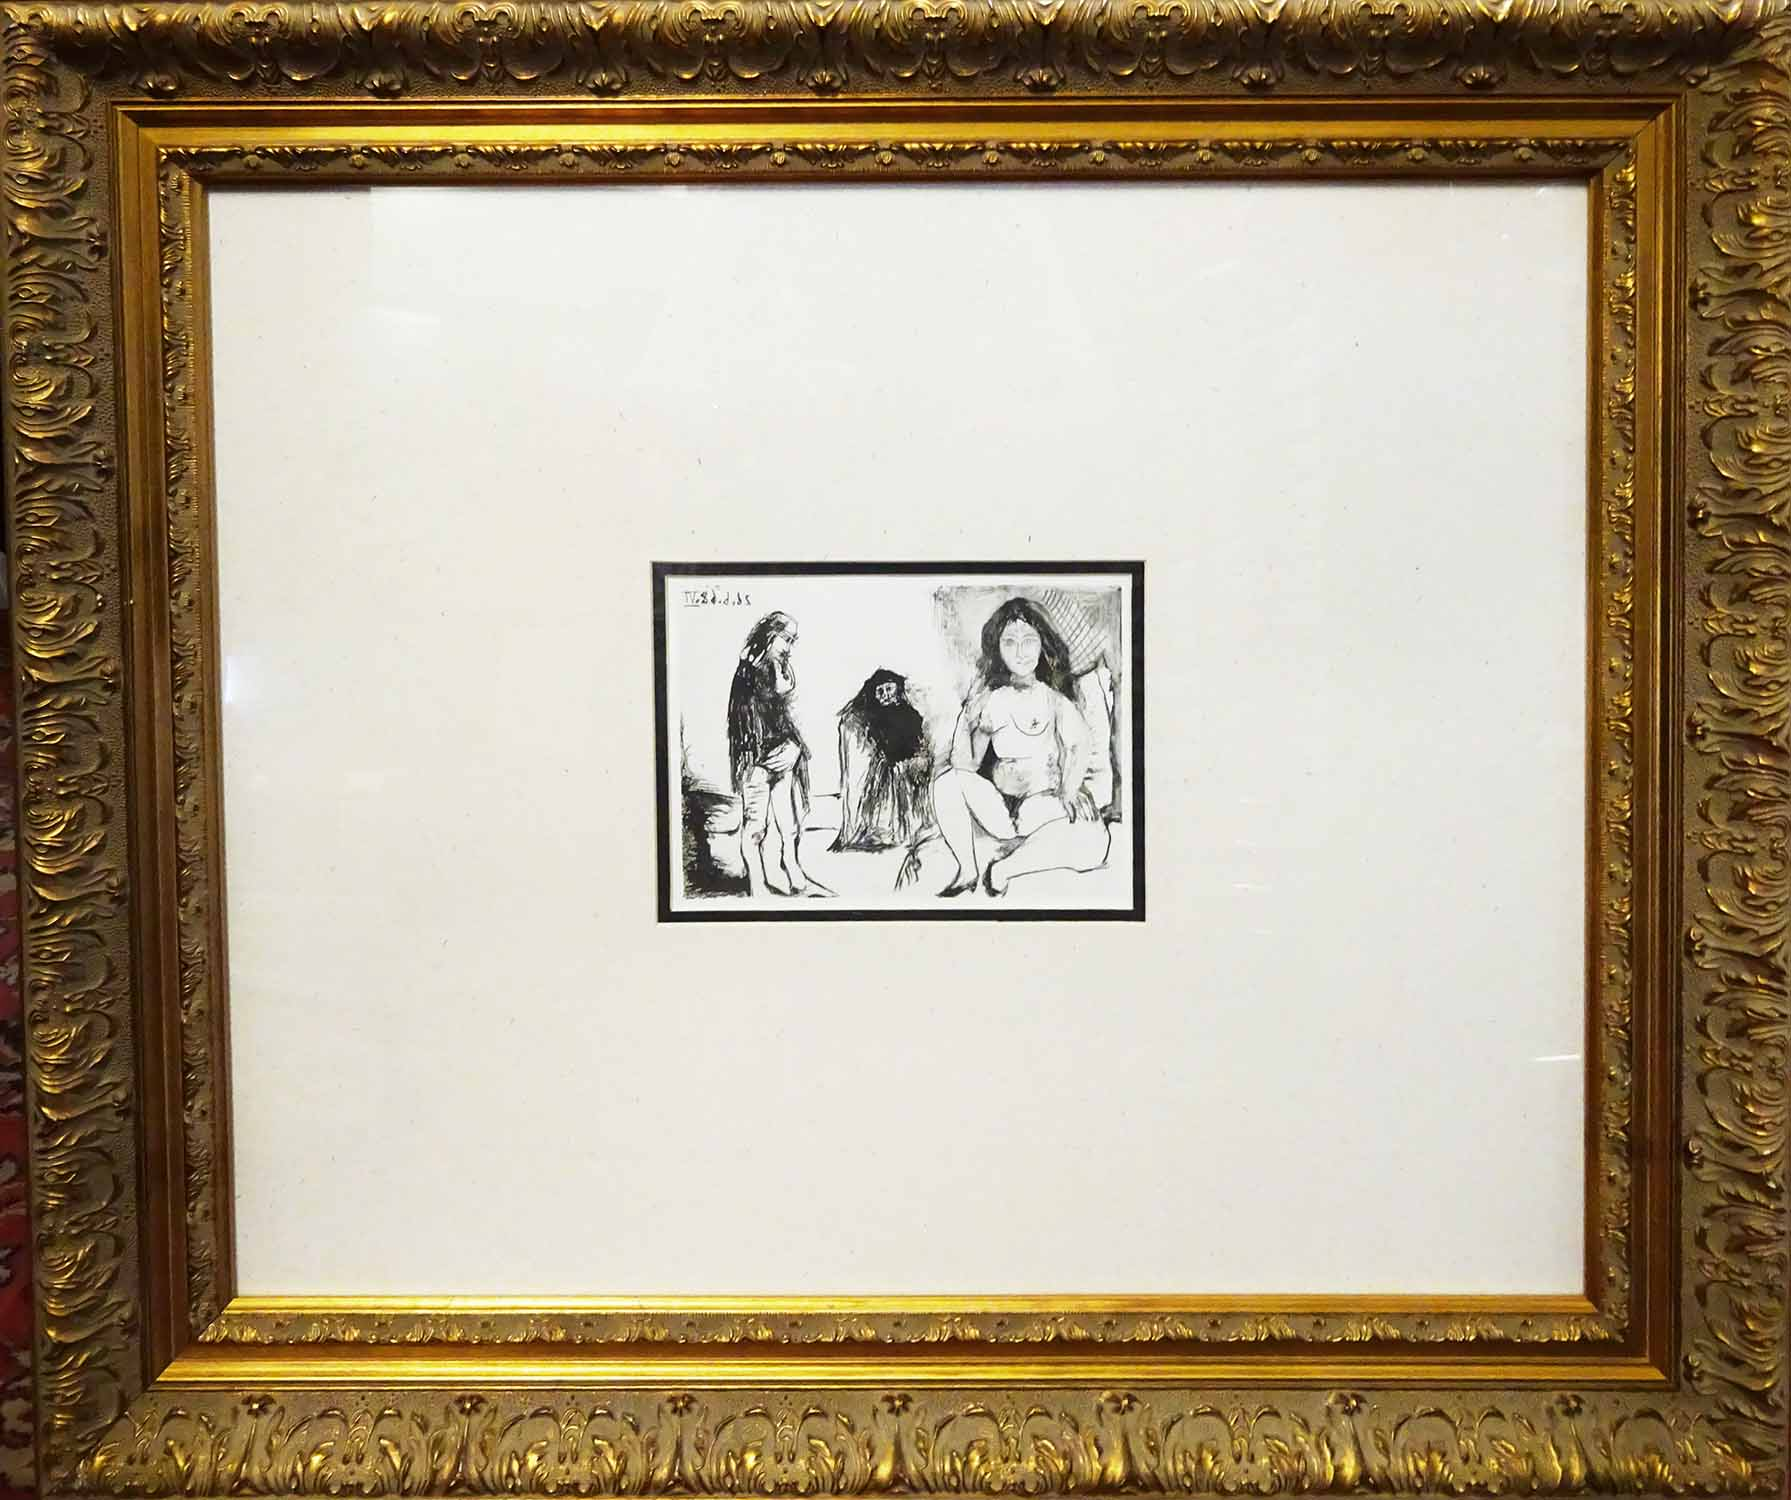 Lot 30 - After PABLO PICASSO, offset lithograph from the Picasso 347 volume, printed by Conzett and Huber,